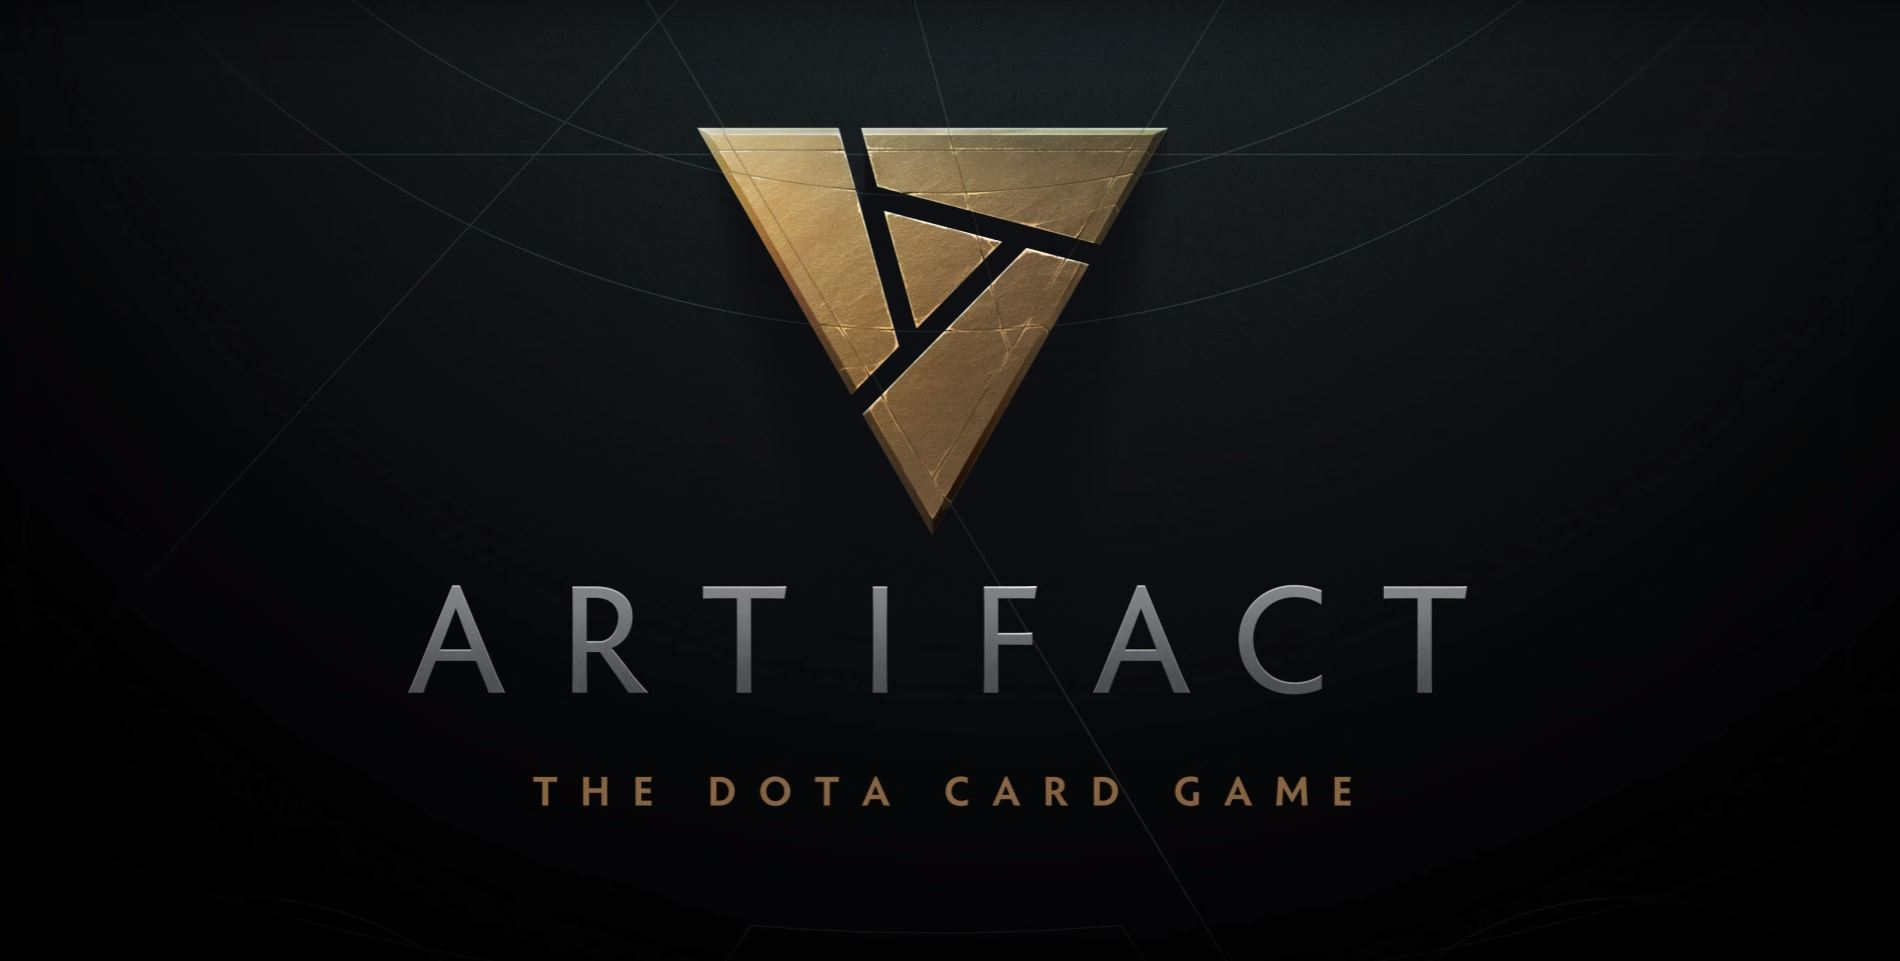 Photo of New video shows 7 minutes of Artifact's Gameplay, Valve's Dota Card Game